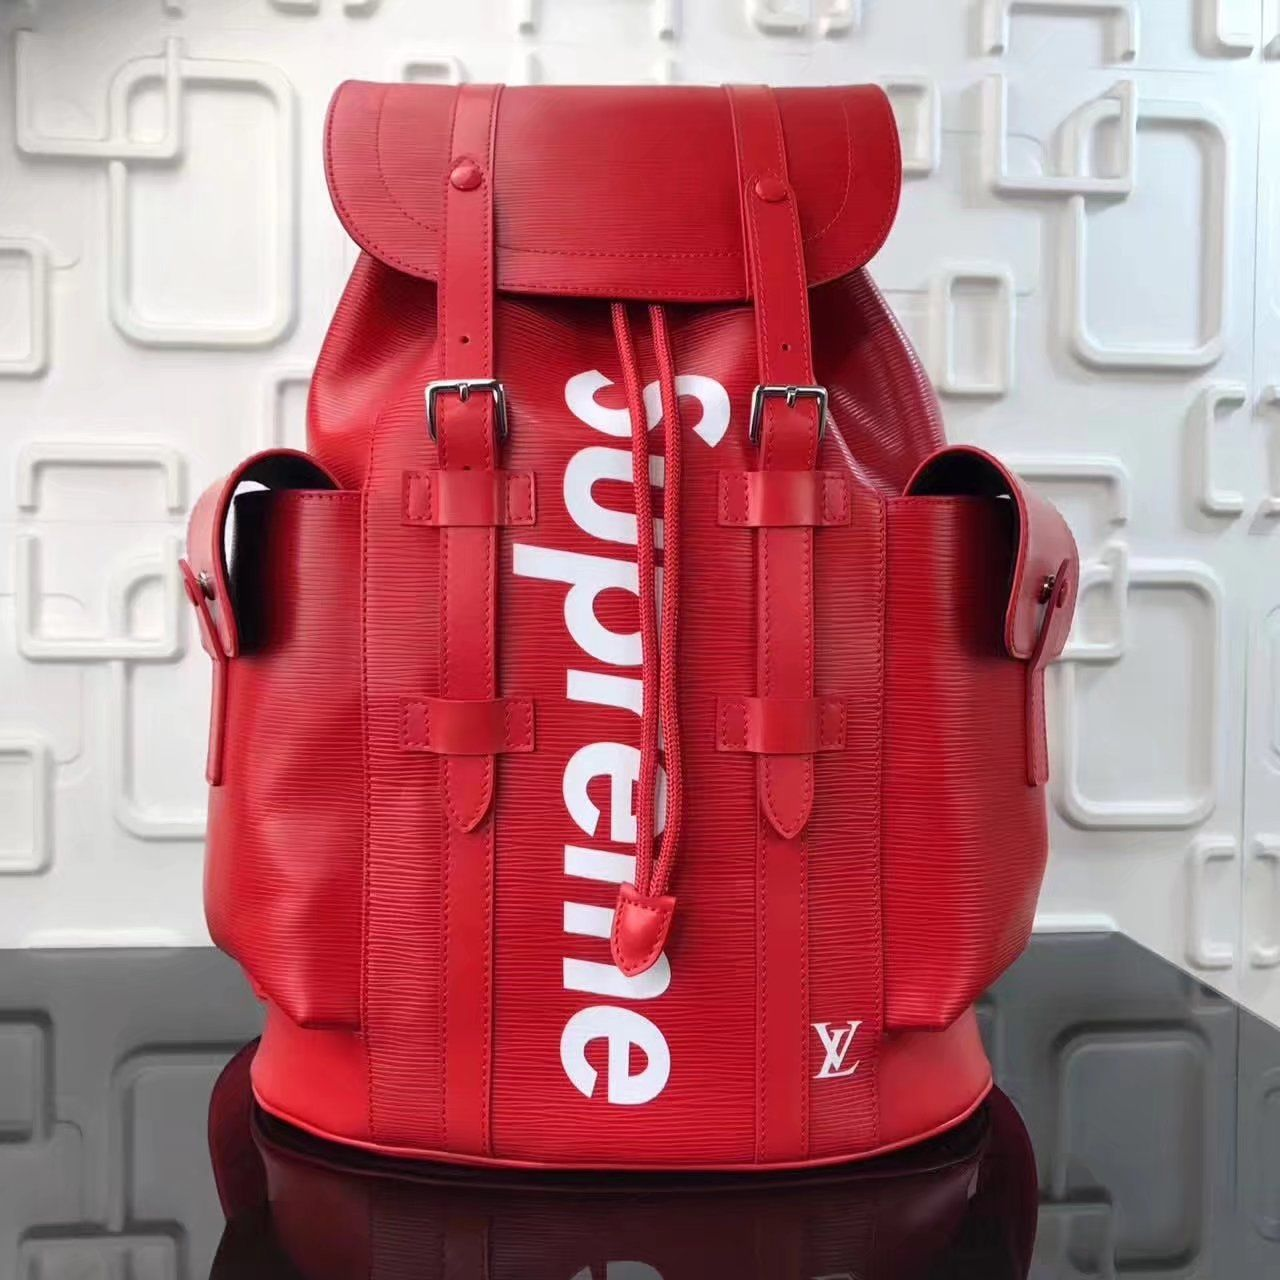 Replica Louis Vuitton Supreme Christopher Red Backpack For Man ID 33430 e8440bcdd0314